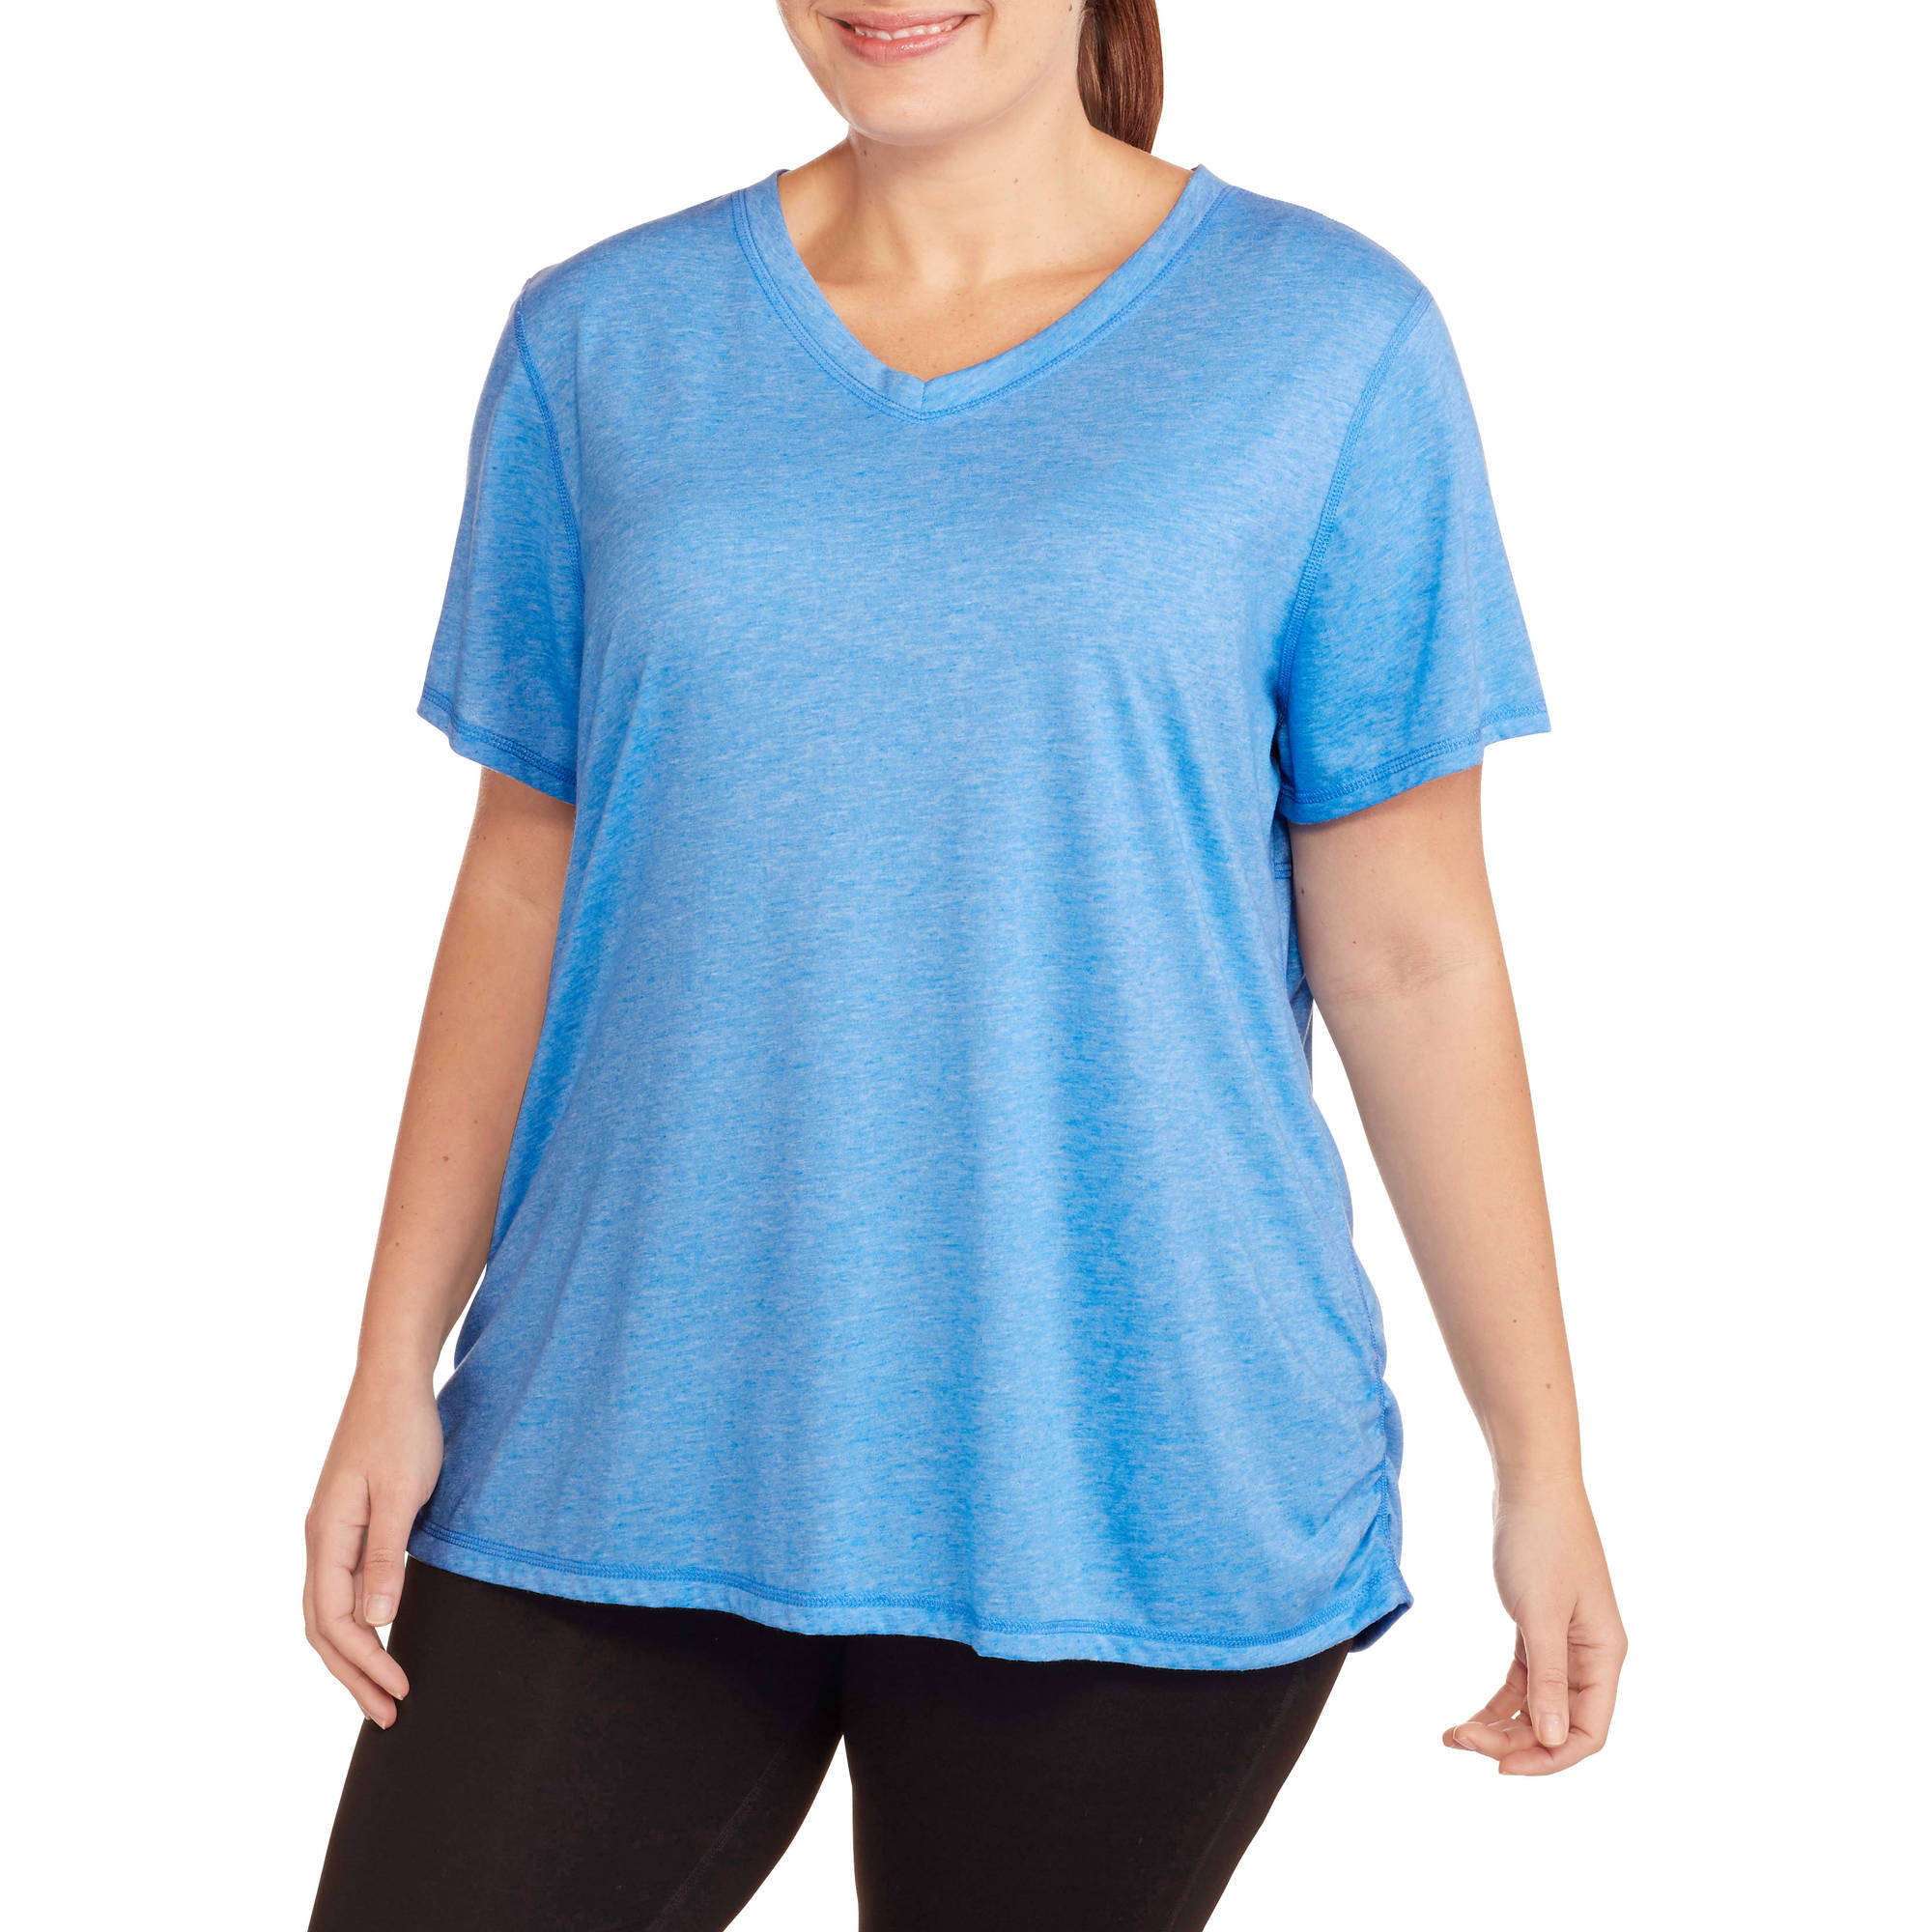 Women's Plus-Size Active Short Sleeve V-Neck Tee